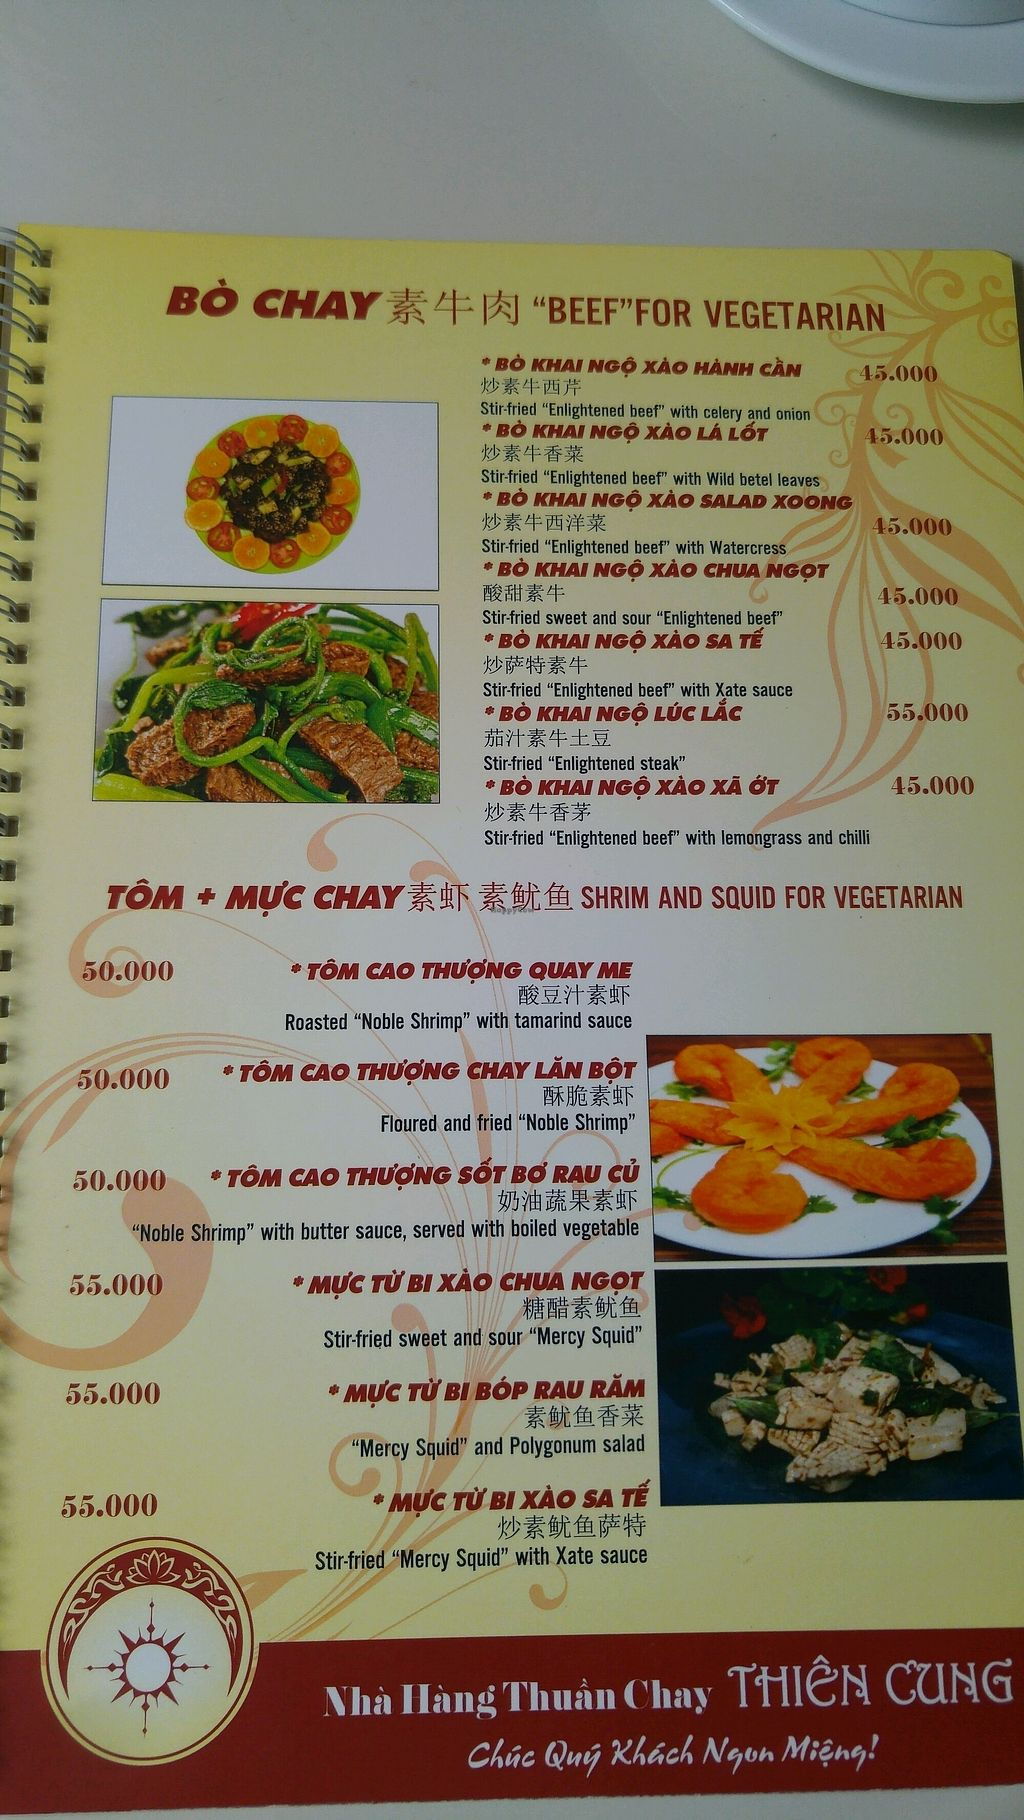 """Photo of Thien Cung - Loving Hut  by <a href=""""/members/profile/daveVN"""">daveVN</a> <br/>menu - beef <br/> September 19, 2017  - <a href='/contact/abuse/image/100280/306003'>Report</a>"""